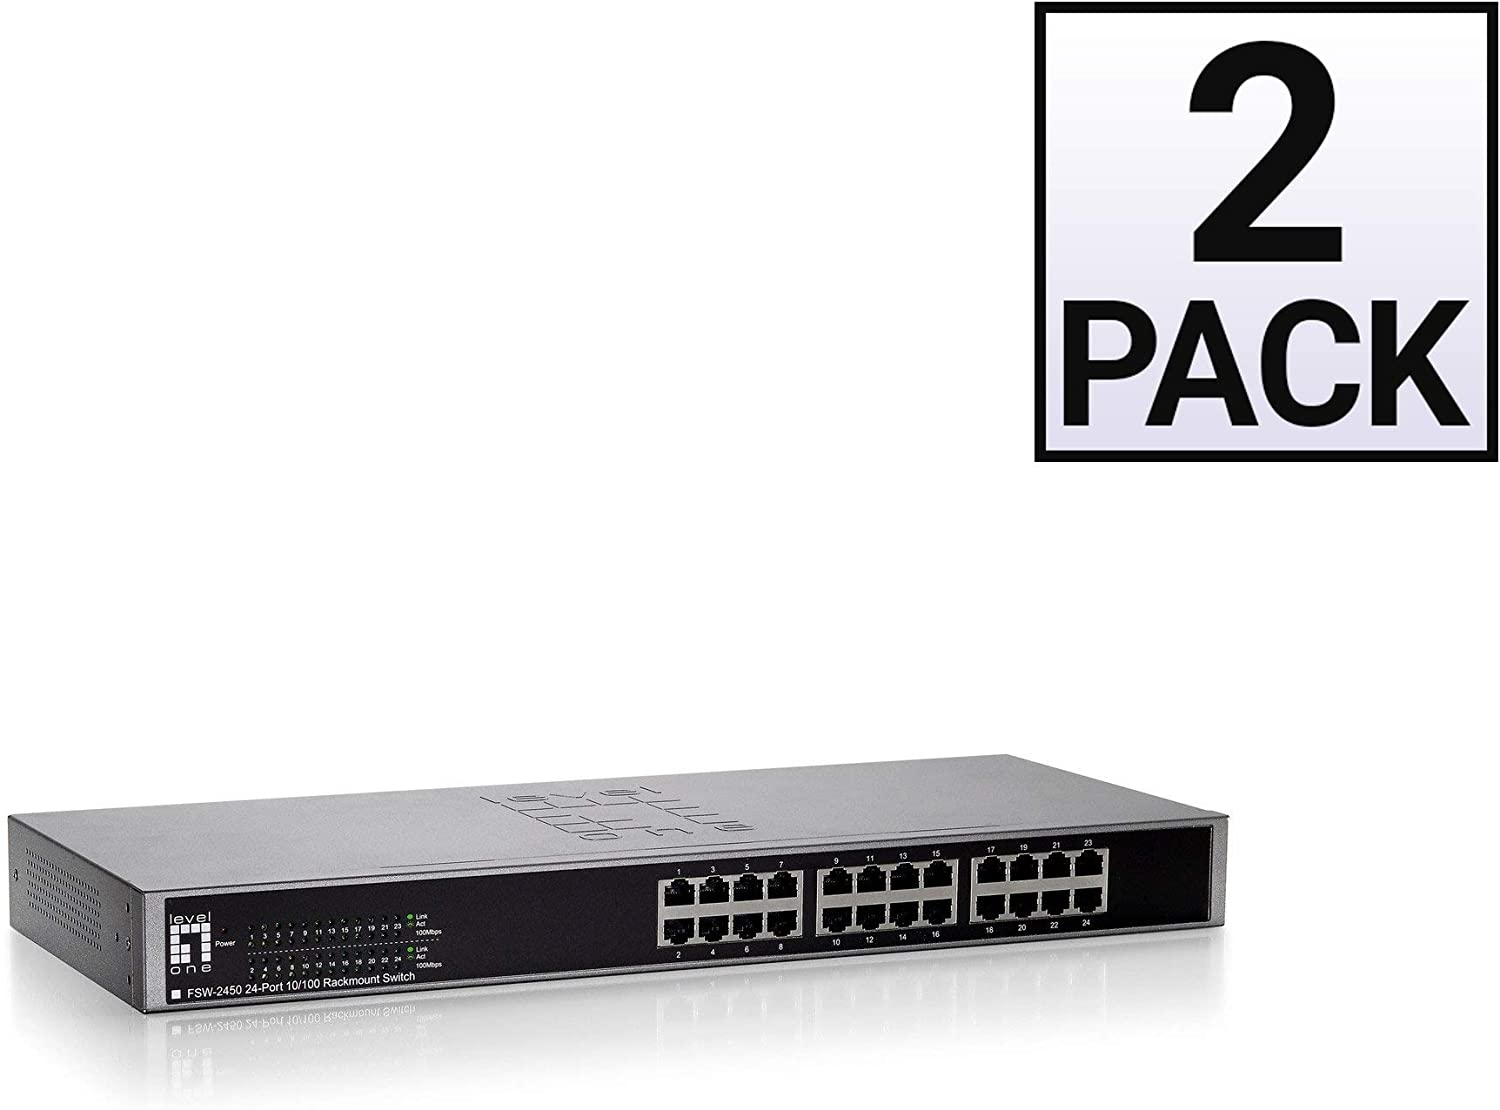 GOWOS (2 Pack) 24 Port 10/100 Fast Ethernet Switch, Black